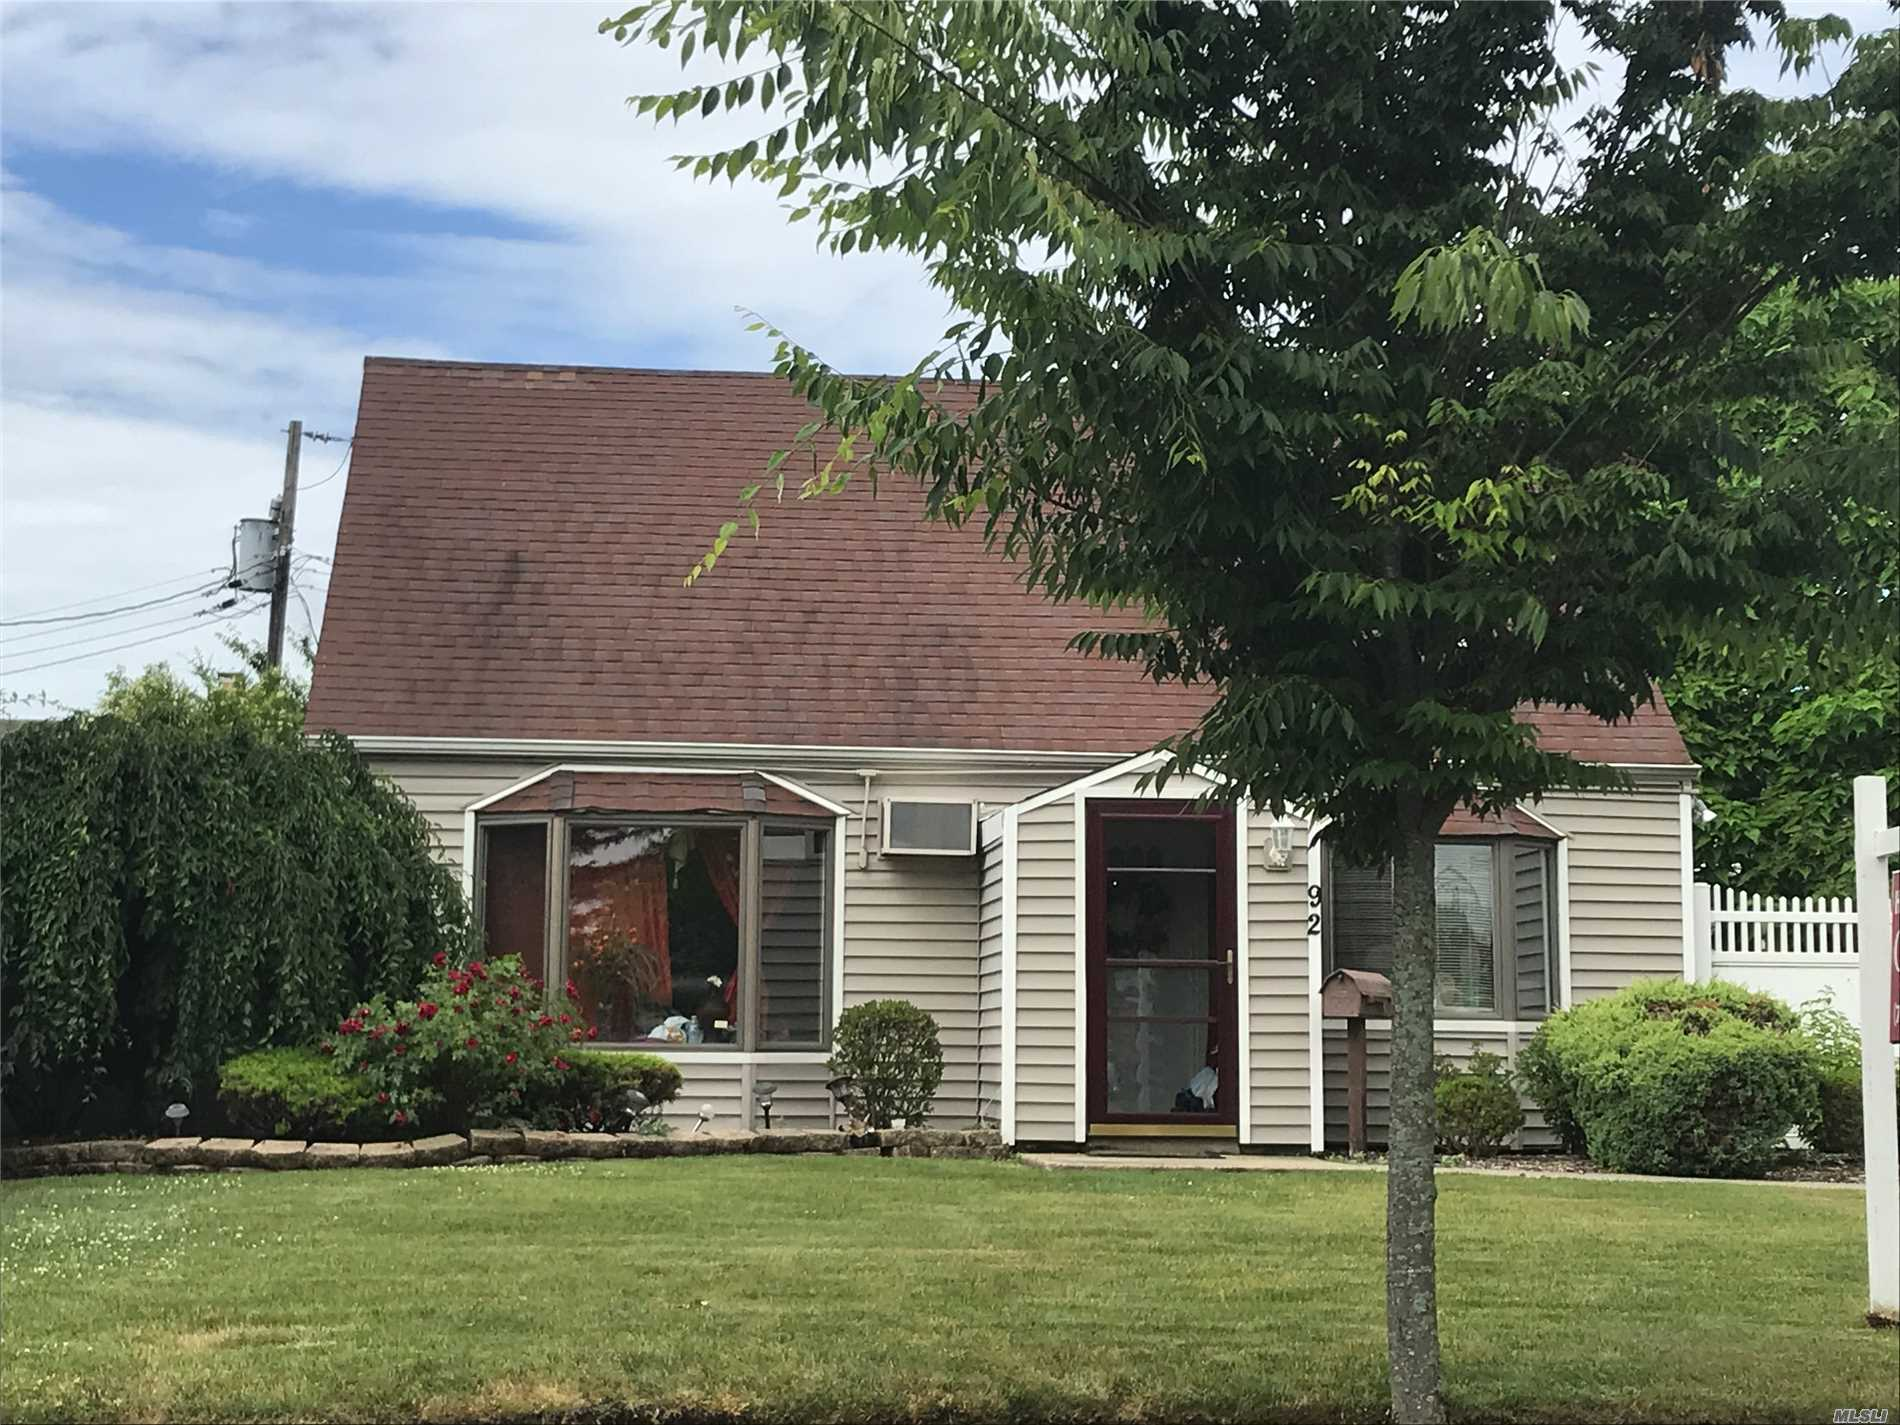 Beautiful Expanded Cape In Levittown For Sale Features 3 Bedrooms, 2 Full Baths, A Granite & Stainless Steel Eat-In-Kitchen W/Cherry Cabinets, Living Room, Dining Room, Huge Family Rm W/Access To Yard. Separate Laundry Area, Entry Foyer/Mud Room, Updated Burner, Windows, Siding, 2Paver Patios. Private Driveway. A Must See!